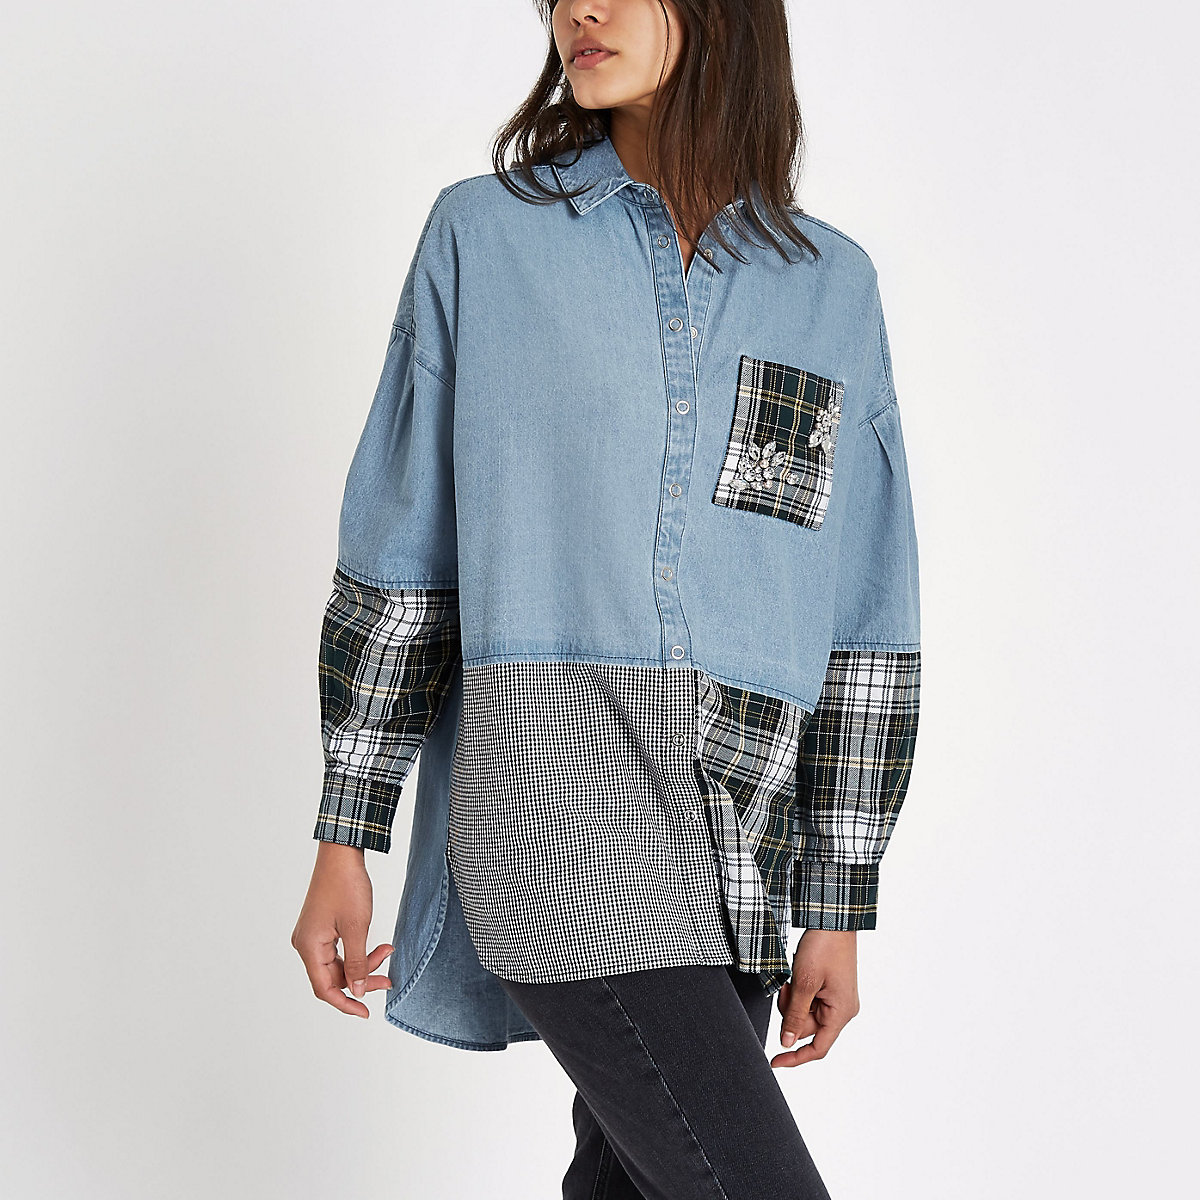 Blue check rhinestone patchwork denim shirt